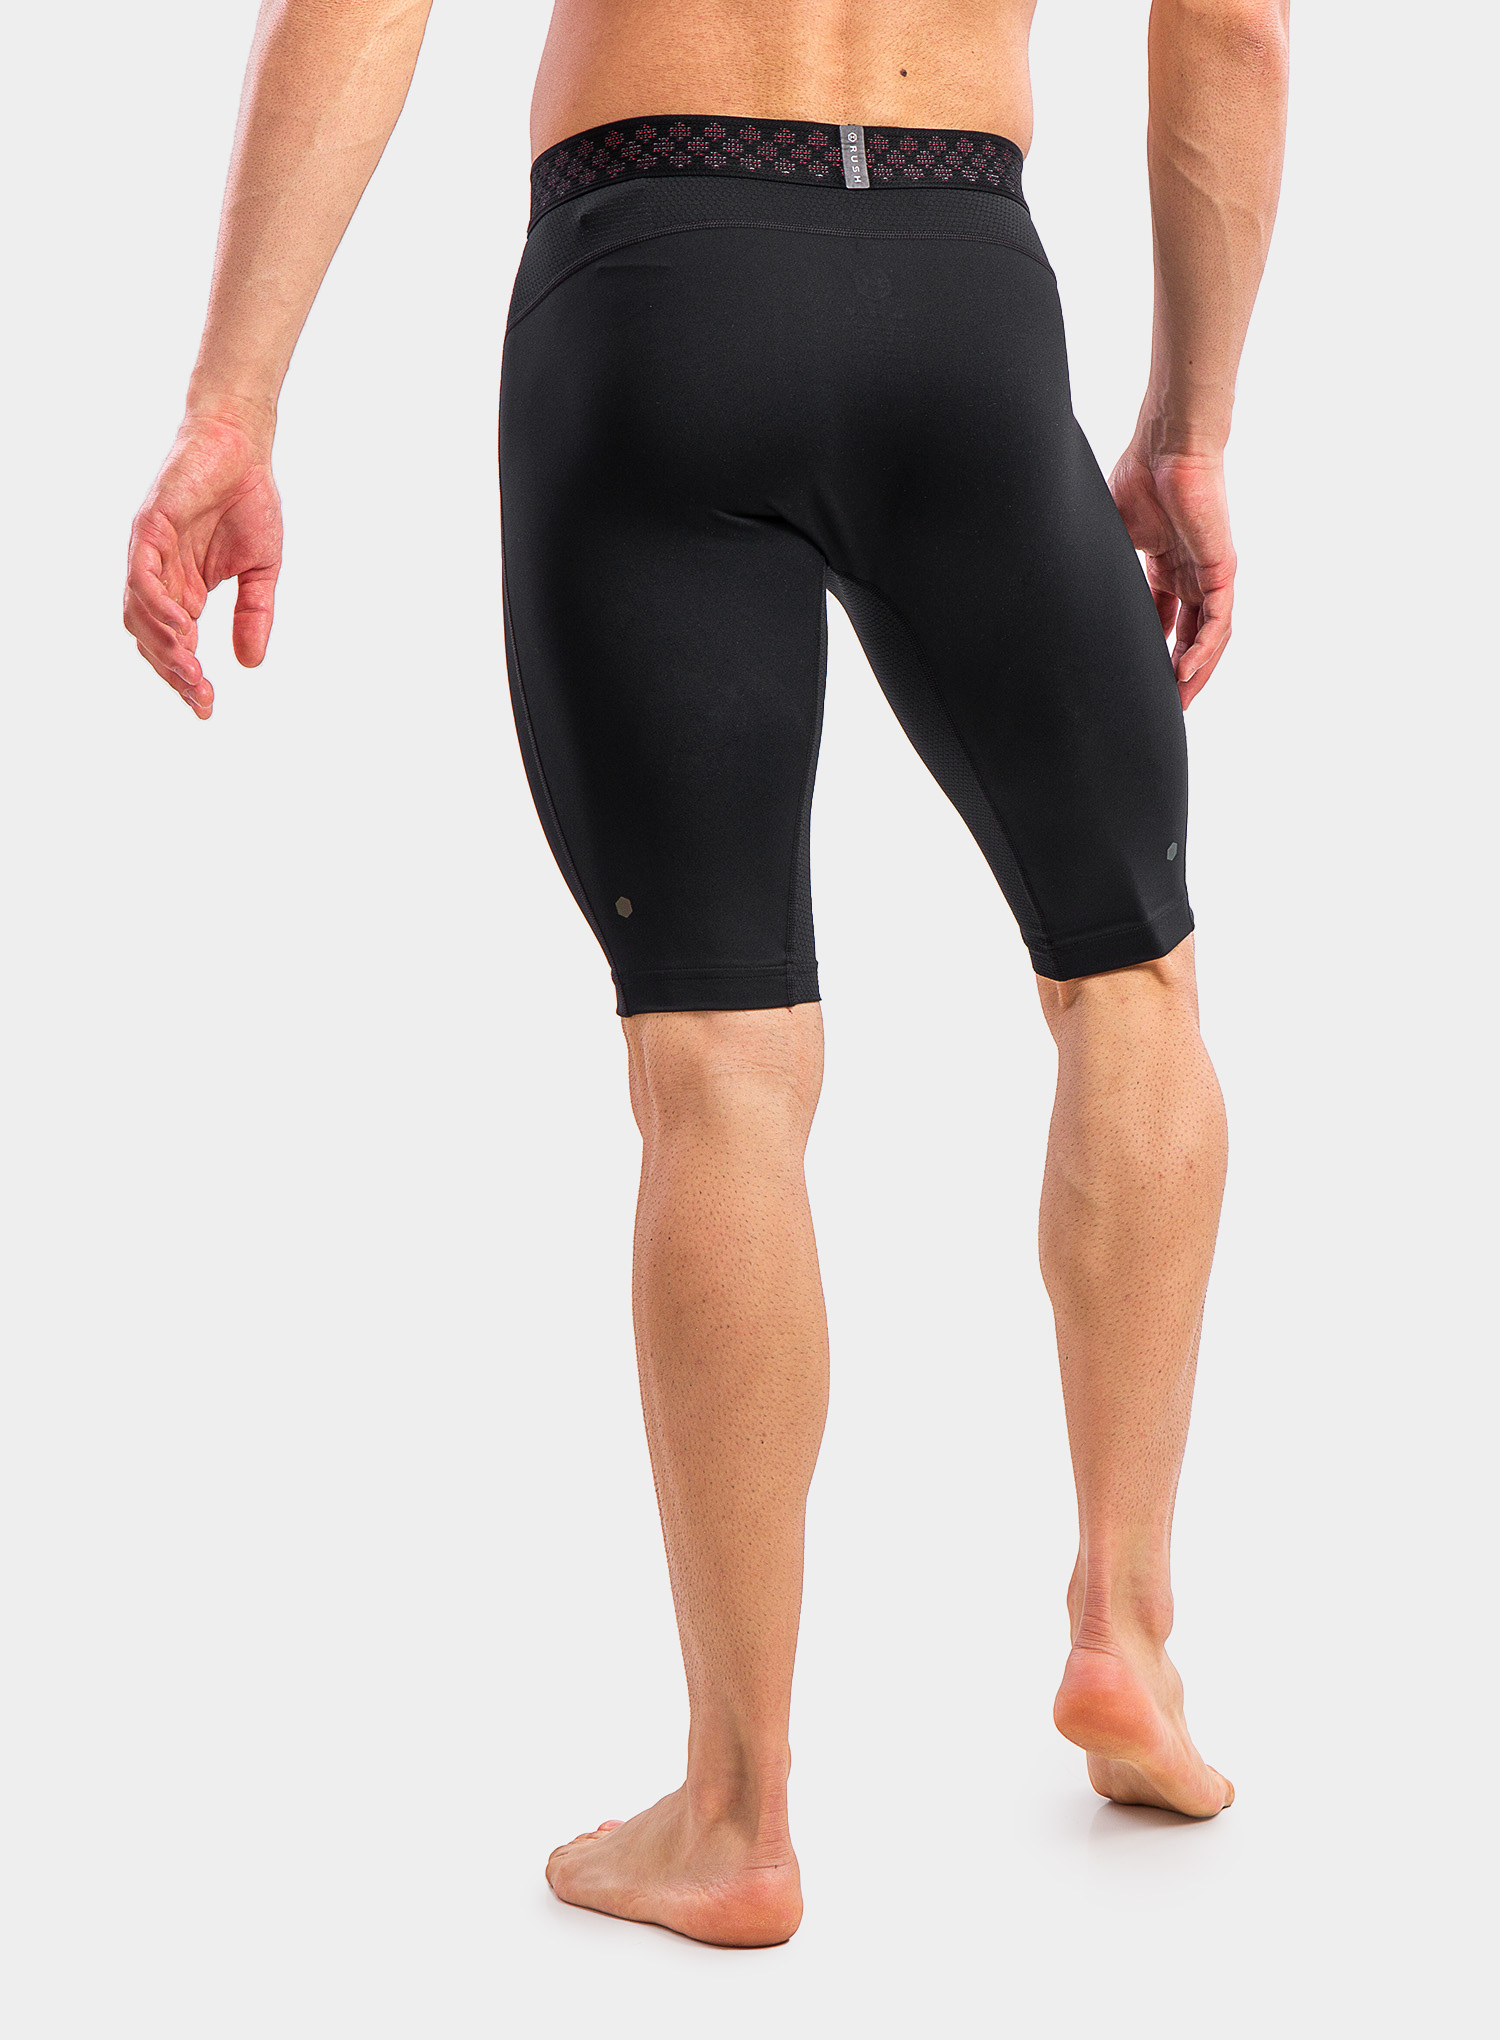 Spodenki Under Armour HG Rush 2.0 Long Shorts - black/black - zdjęcie nr. 2